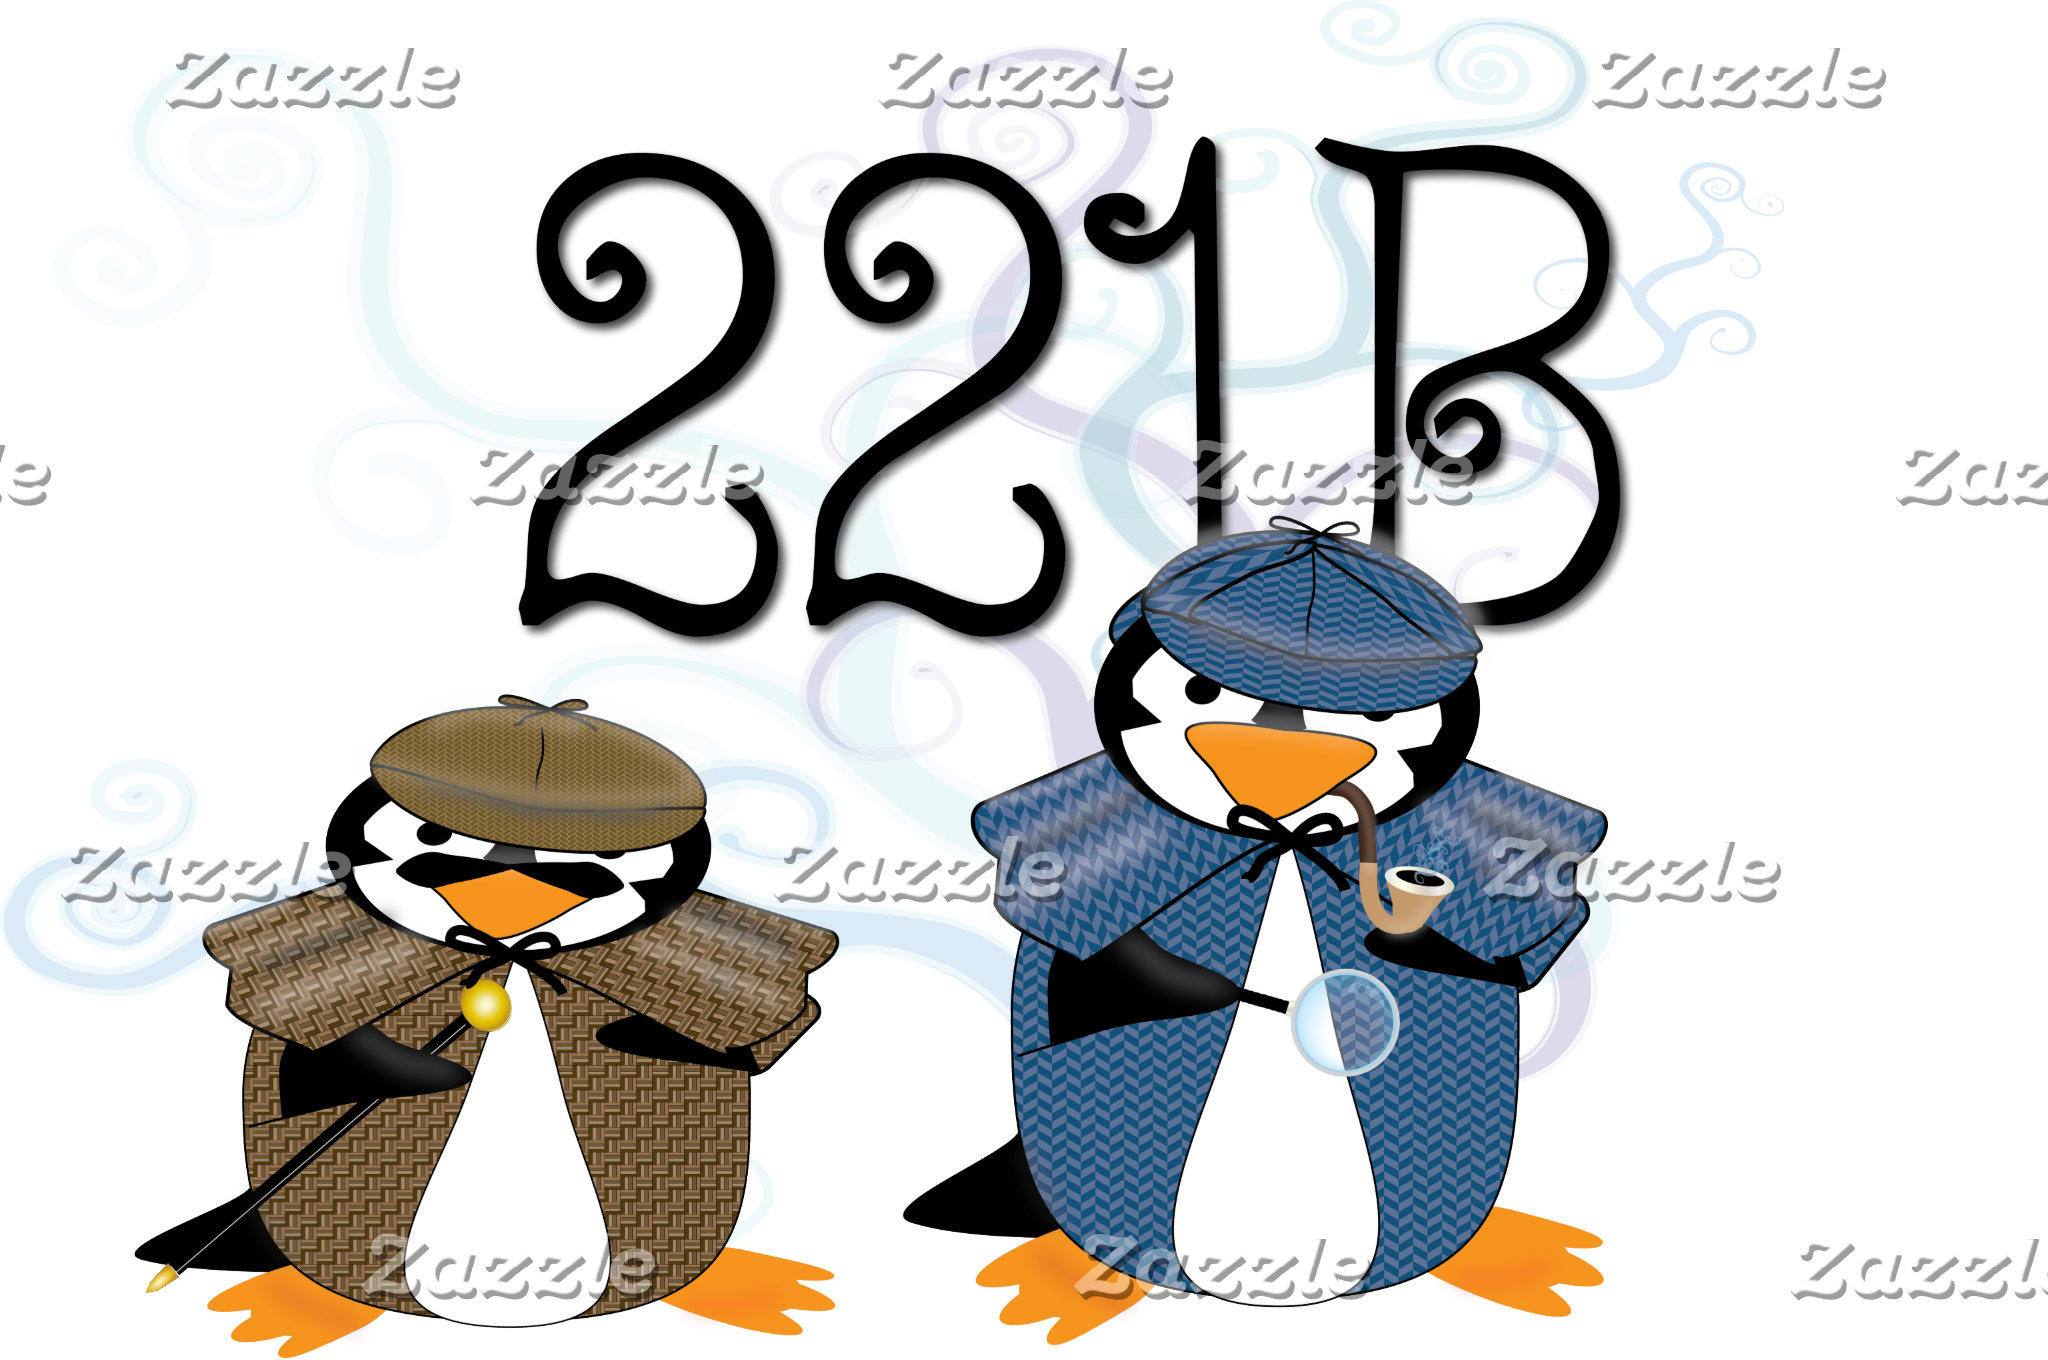 Penguin Partners in Crime - Investigations